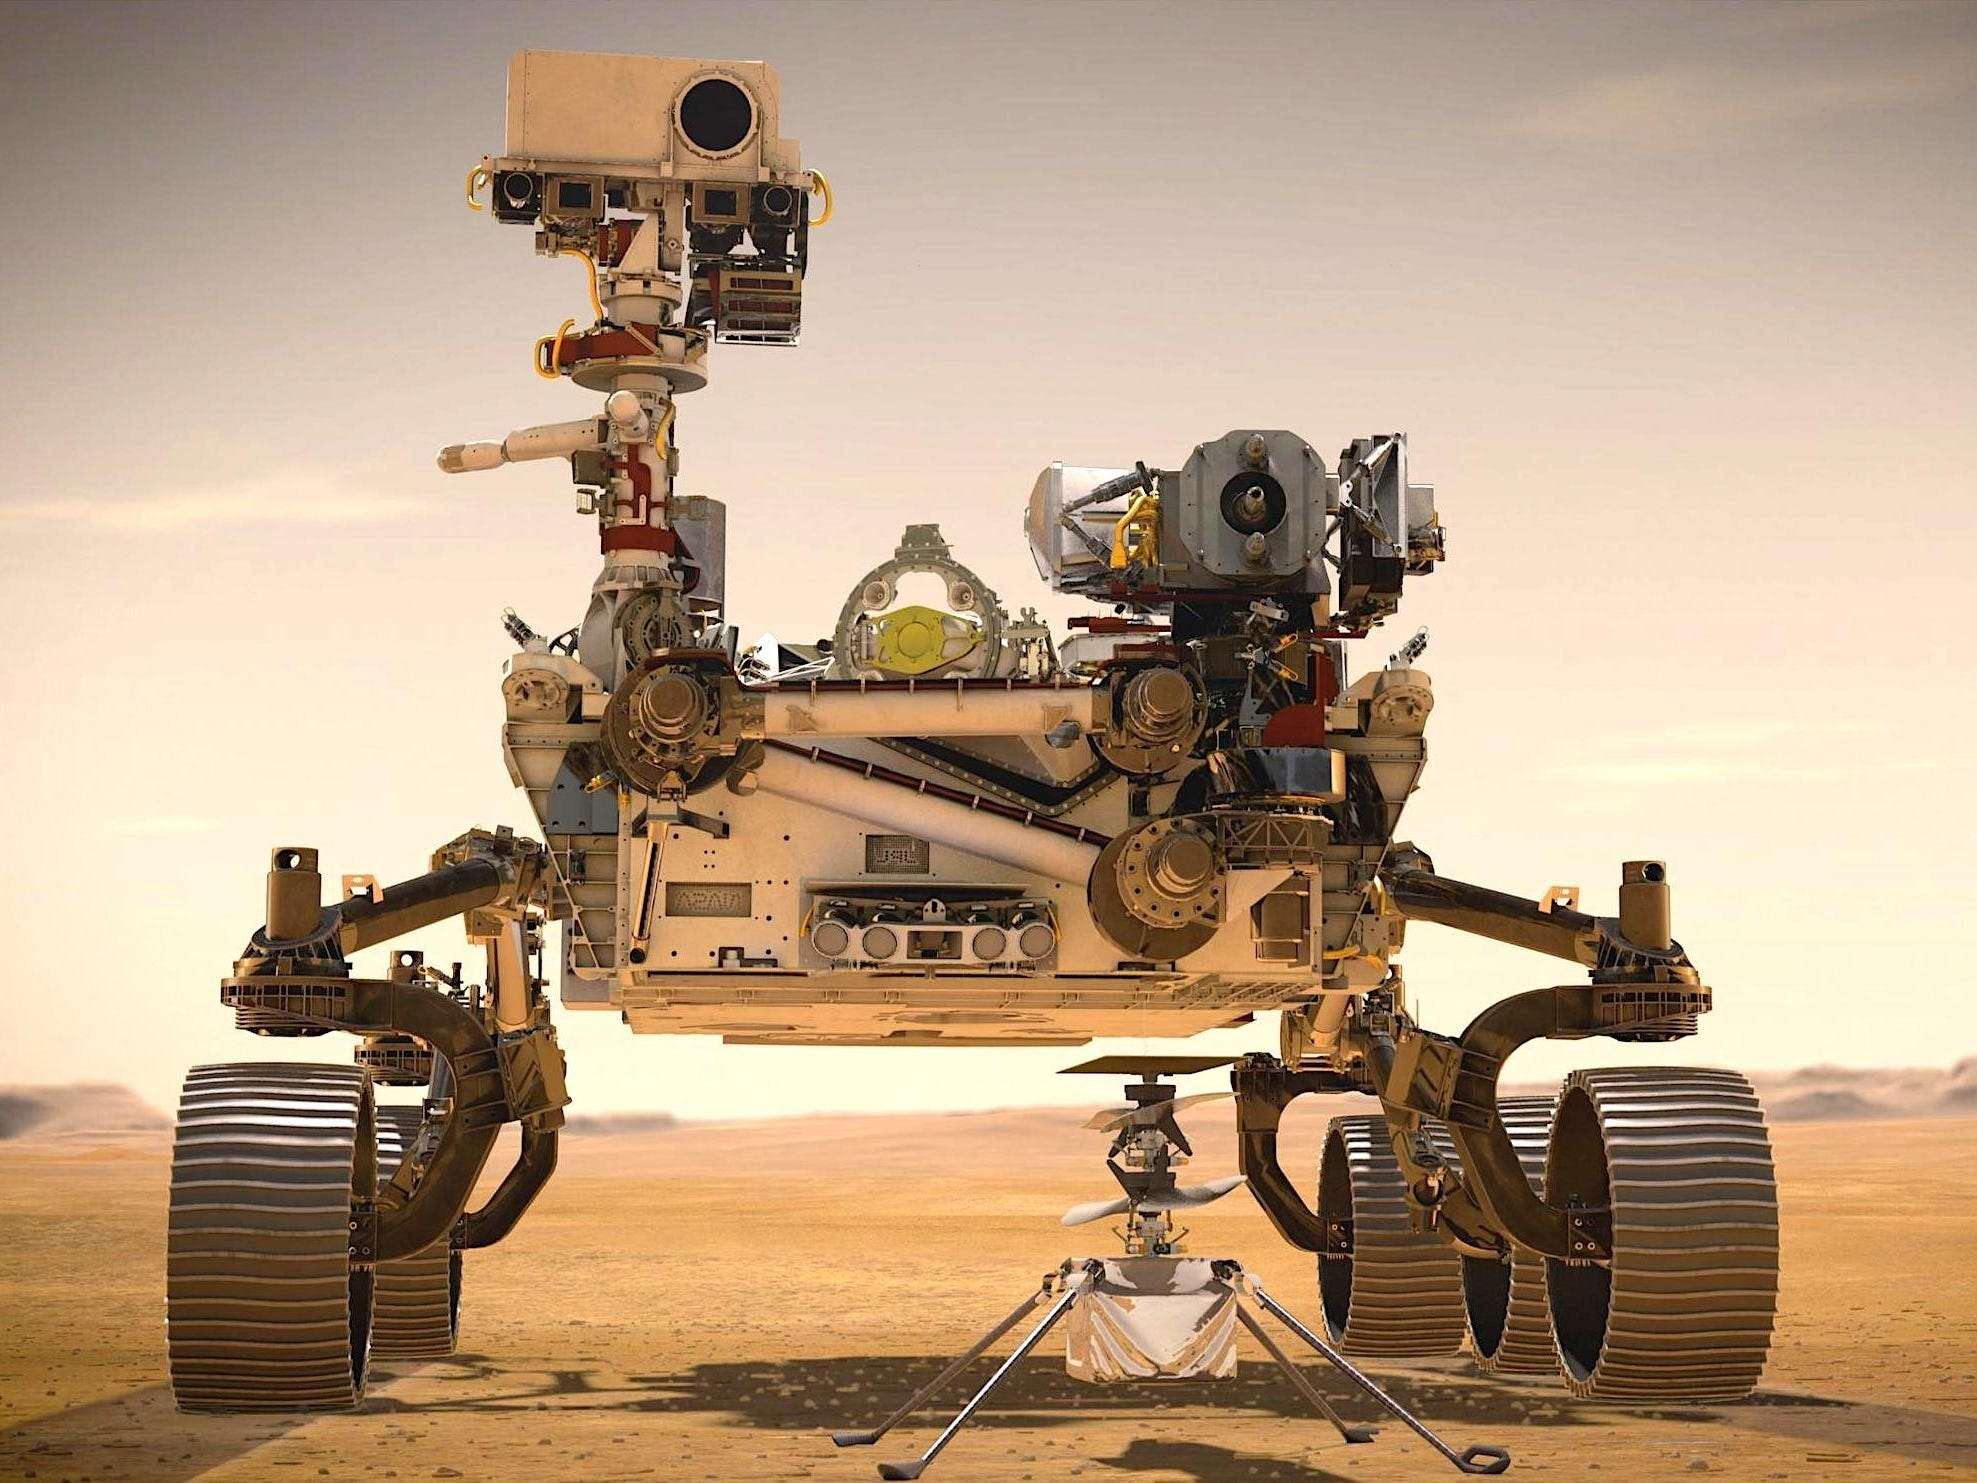 NASA's Perseverance rover is about to attempt a supersonic plunge to Mars, complete with a jetpack landing - Business Insider India